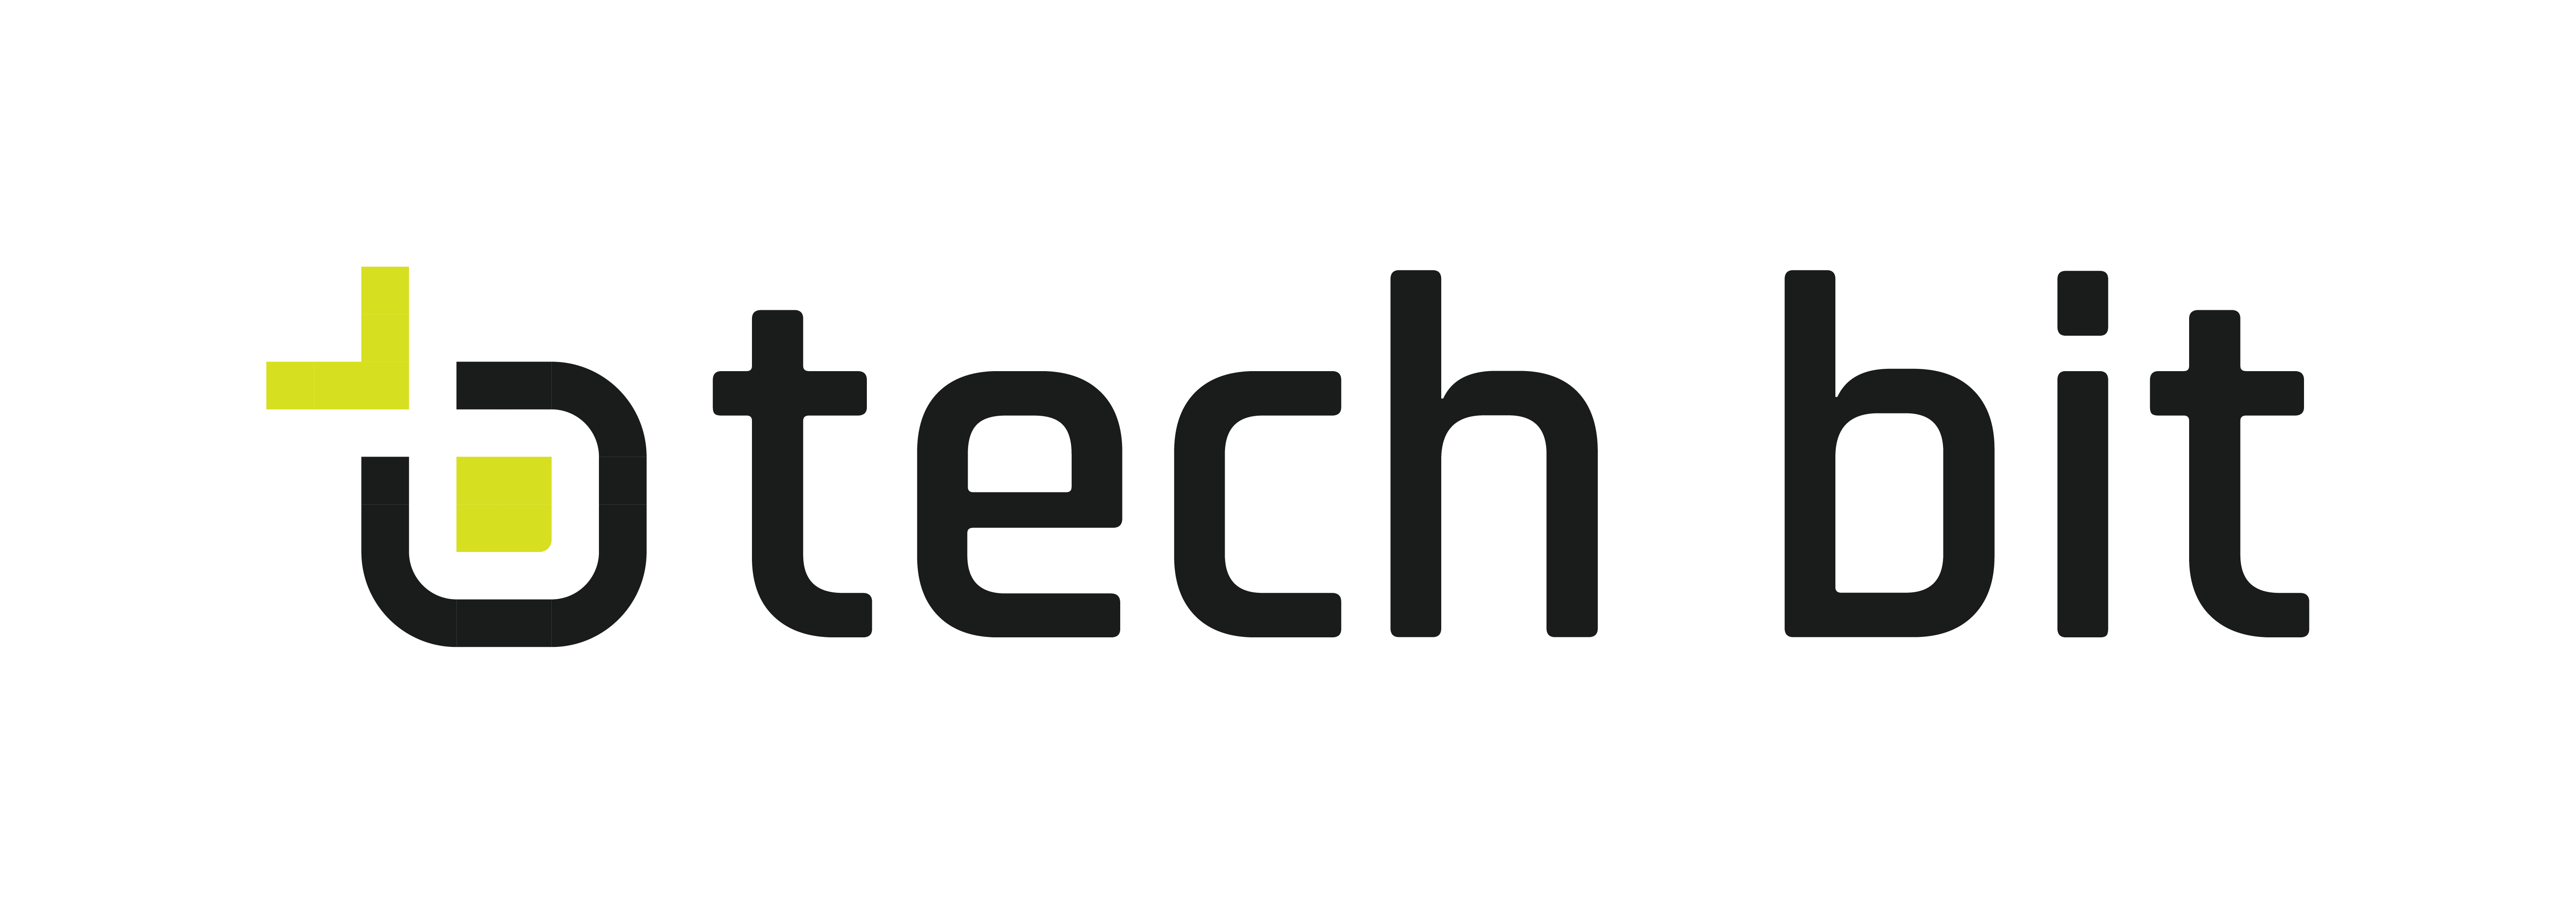 TechBit